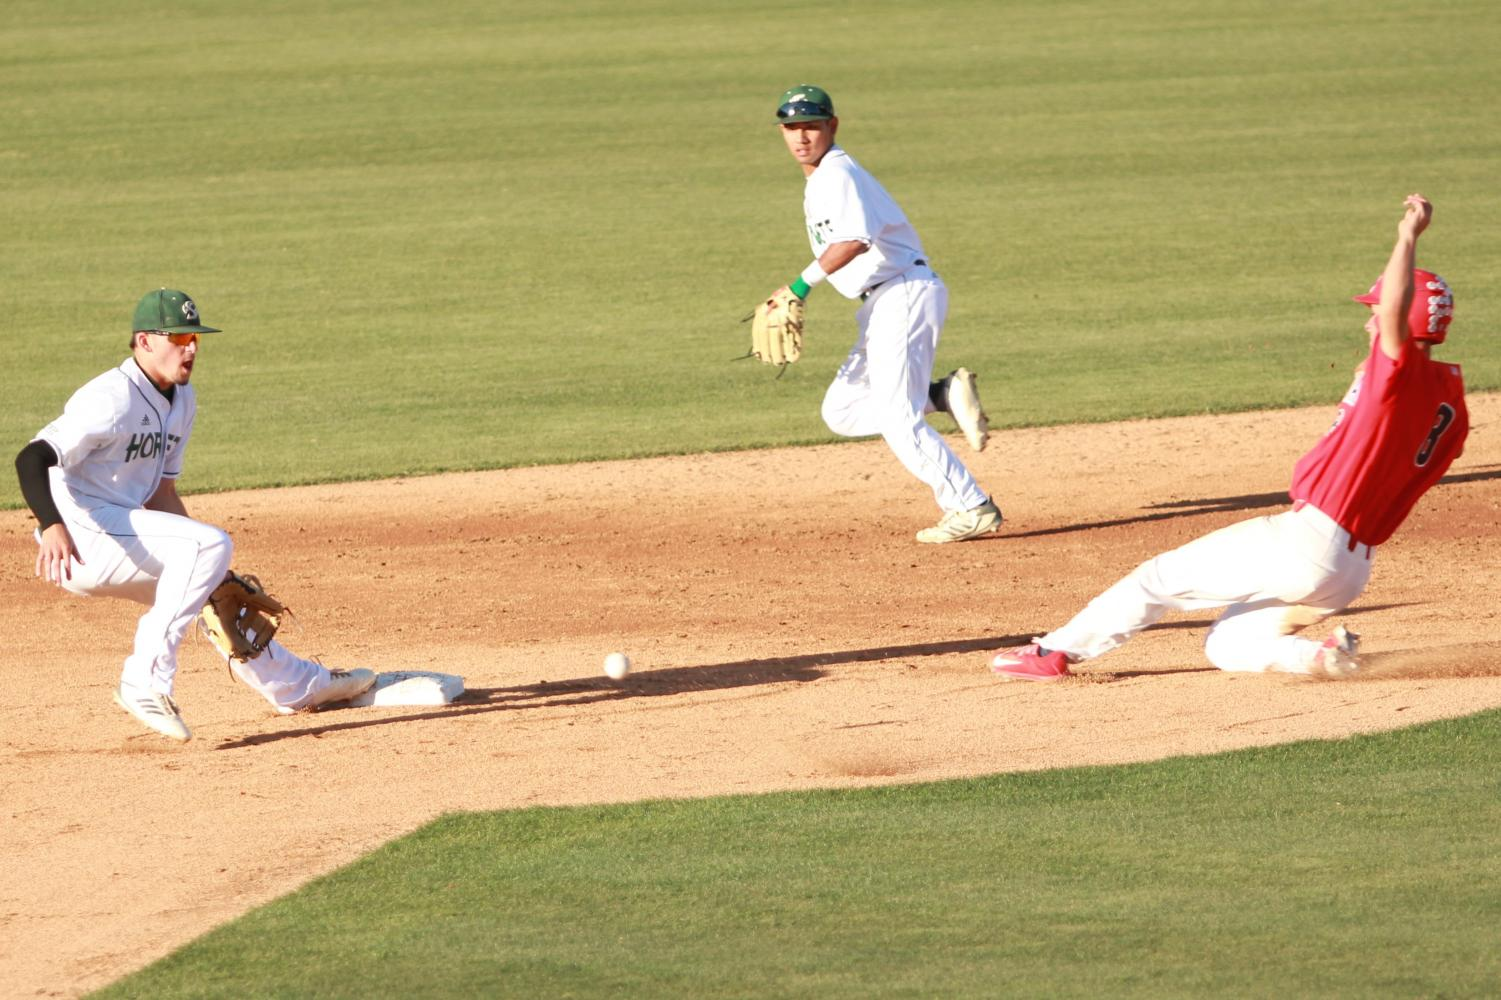 Sacramento State sophomore infielder Josh Urps, left, prepares to catch the ball as Hornets freshman infielder Keith Torres, back, backs up the throw to second as University of Arizona freshman outfielder Donta Williams, right, slides in safely on Monday, May 14, 2018 at John Smith Field. The Hornets lost to the Wildcats 5-2.